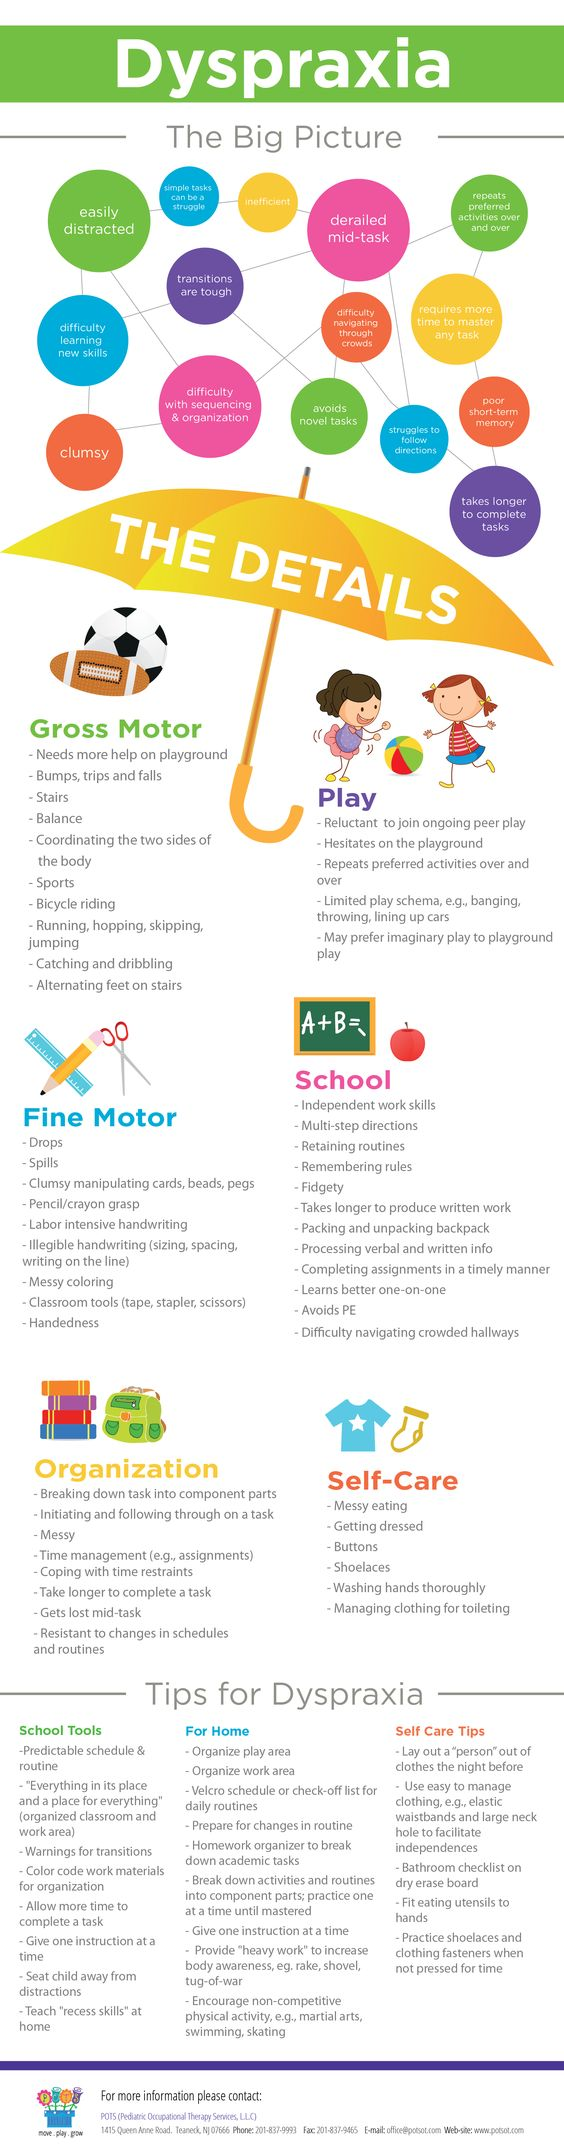 How to Deal With Dyspraxia Infographic - e-Learning Infographicse-Learning Infographics